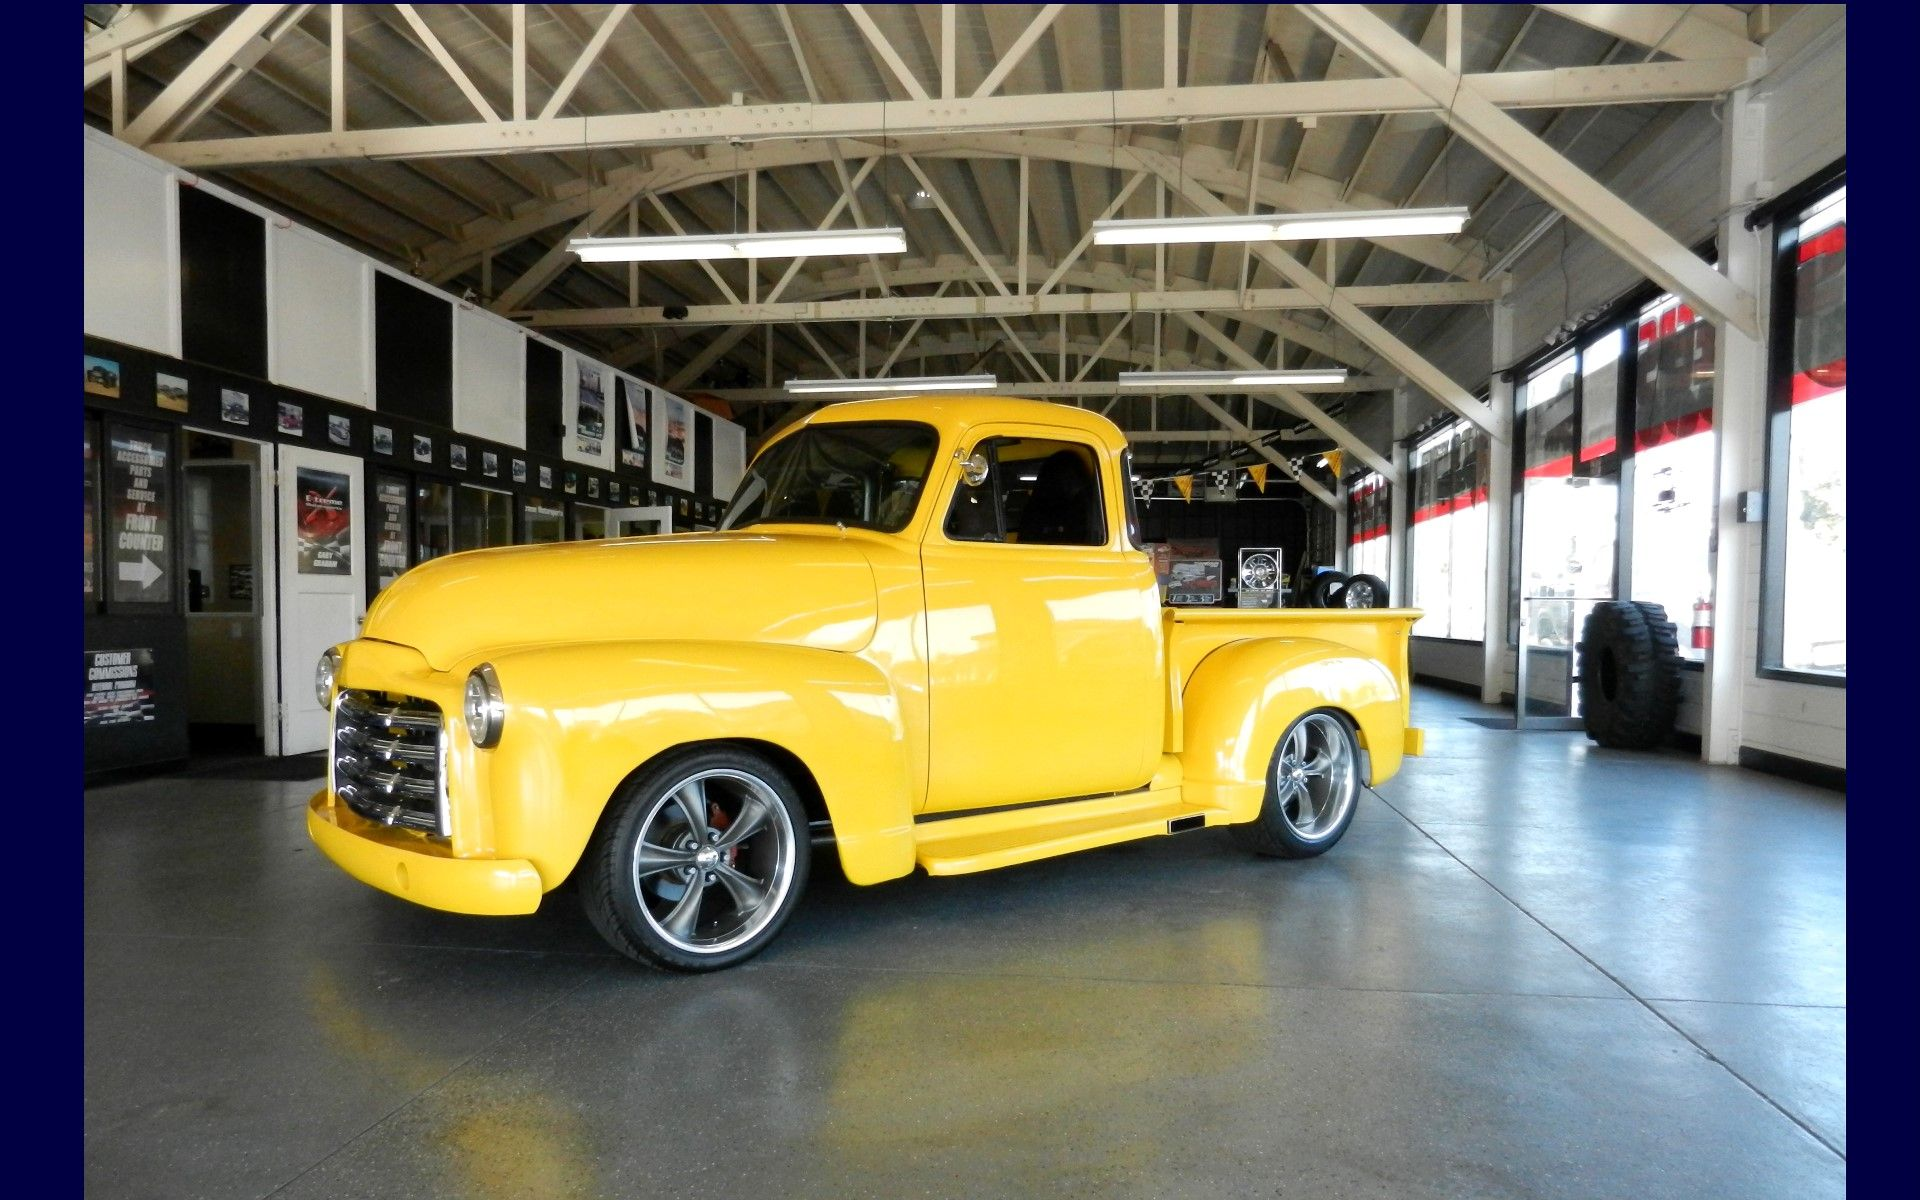 Awesome | a. Trucks | Pinterest | 54 chevy truck, Classic trucks and ...